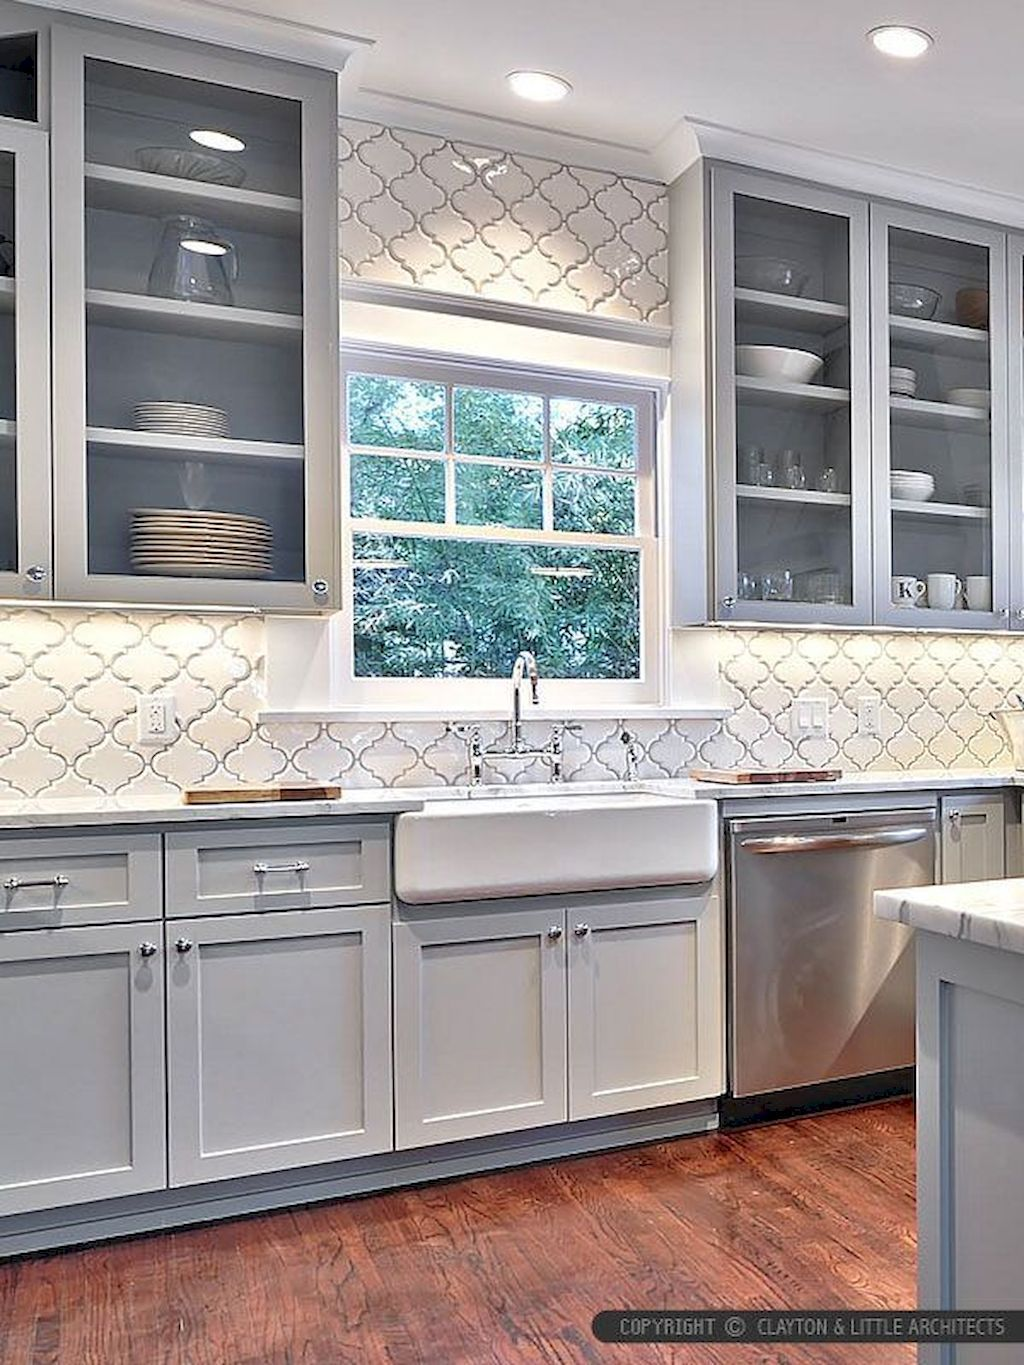 Trend 2018 For Beadboard Backsplash 300×200.jpg